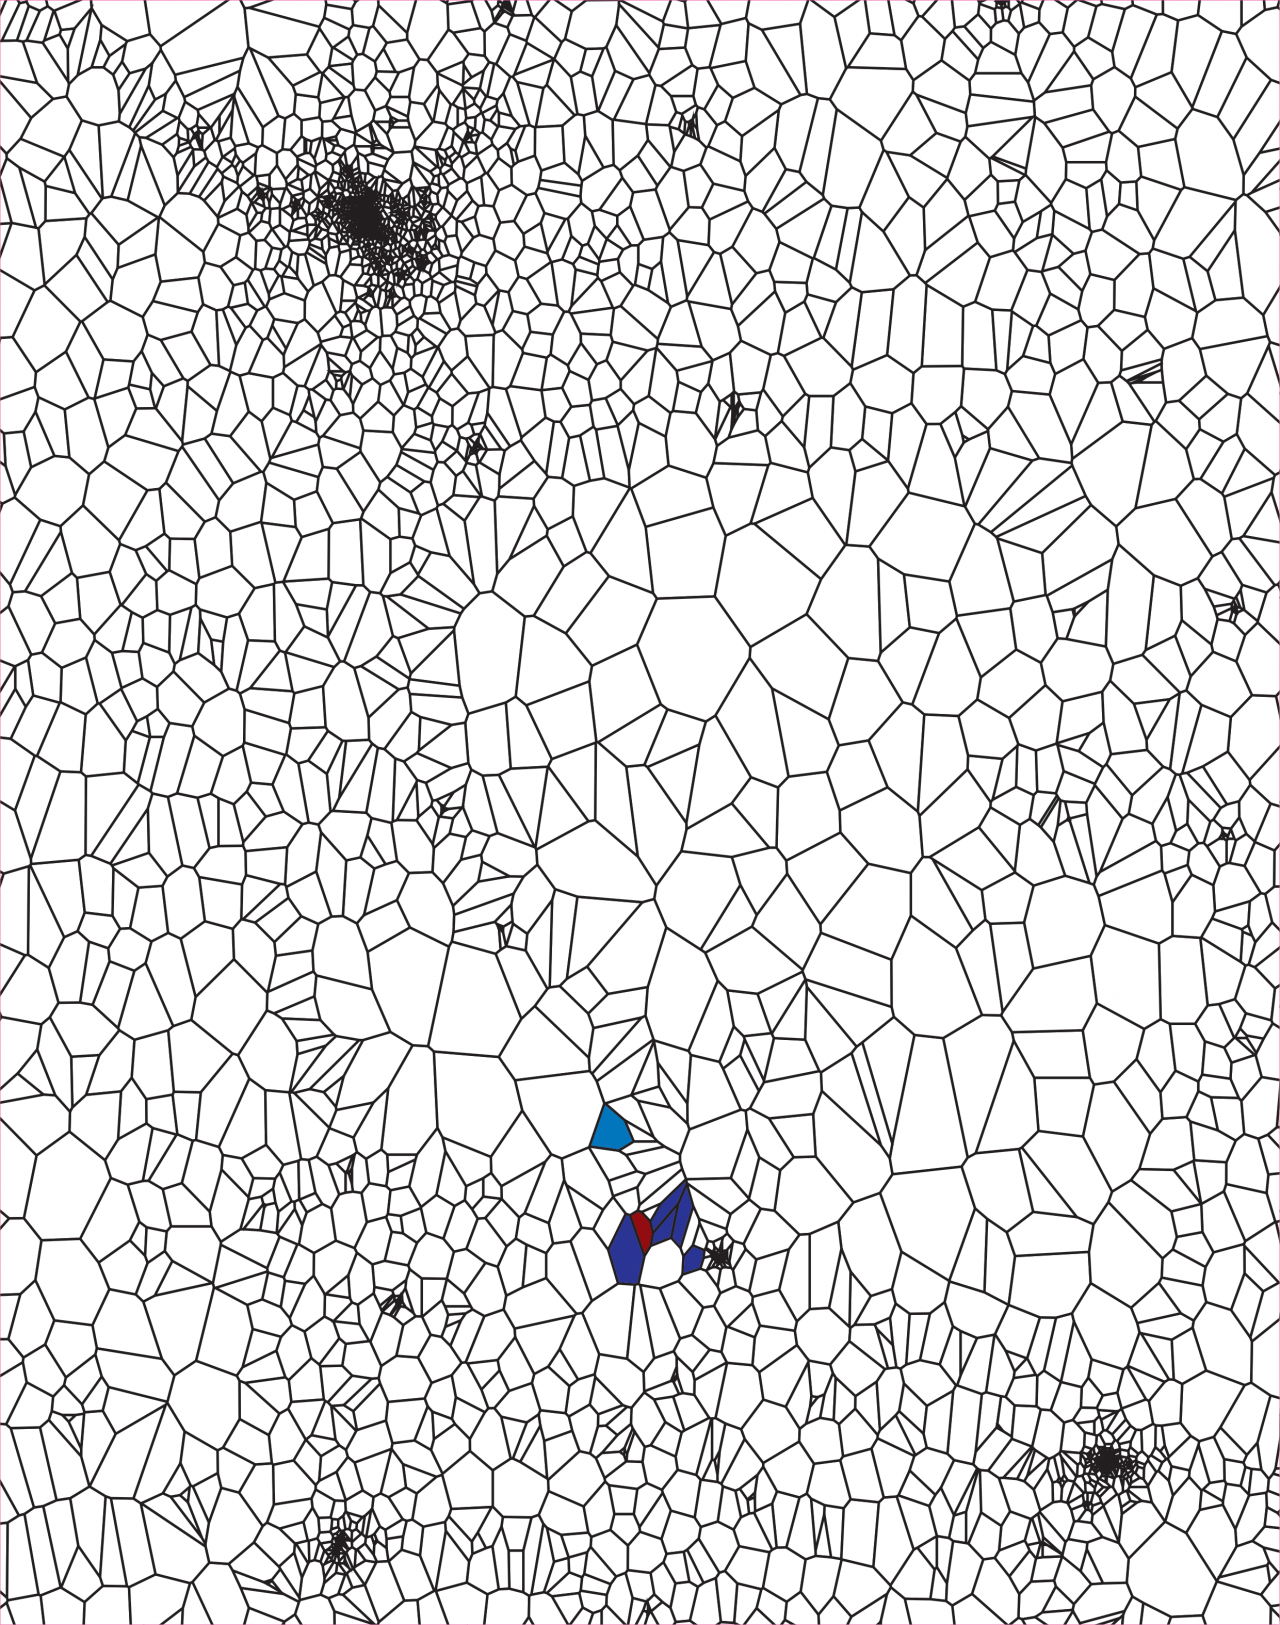 Geographical maps with lines similar to a cell structure. Coloured cells represent the virus-infected areas, which continue to spread from image to image until they cover the entire map.